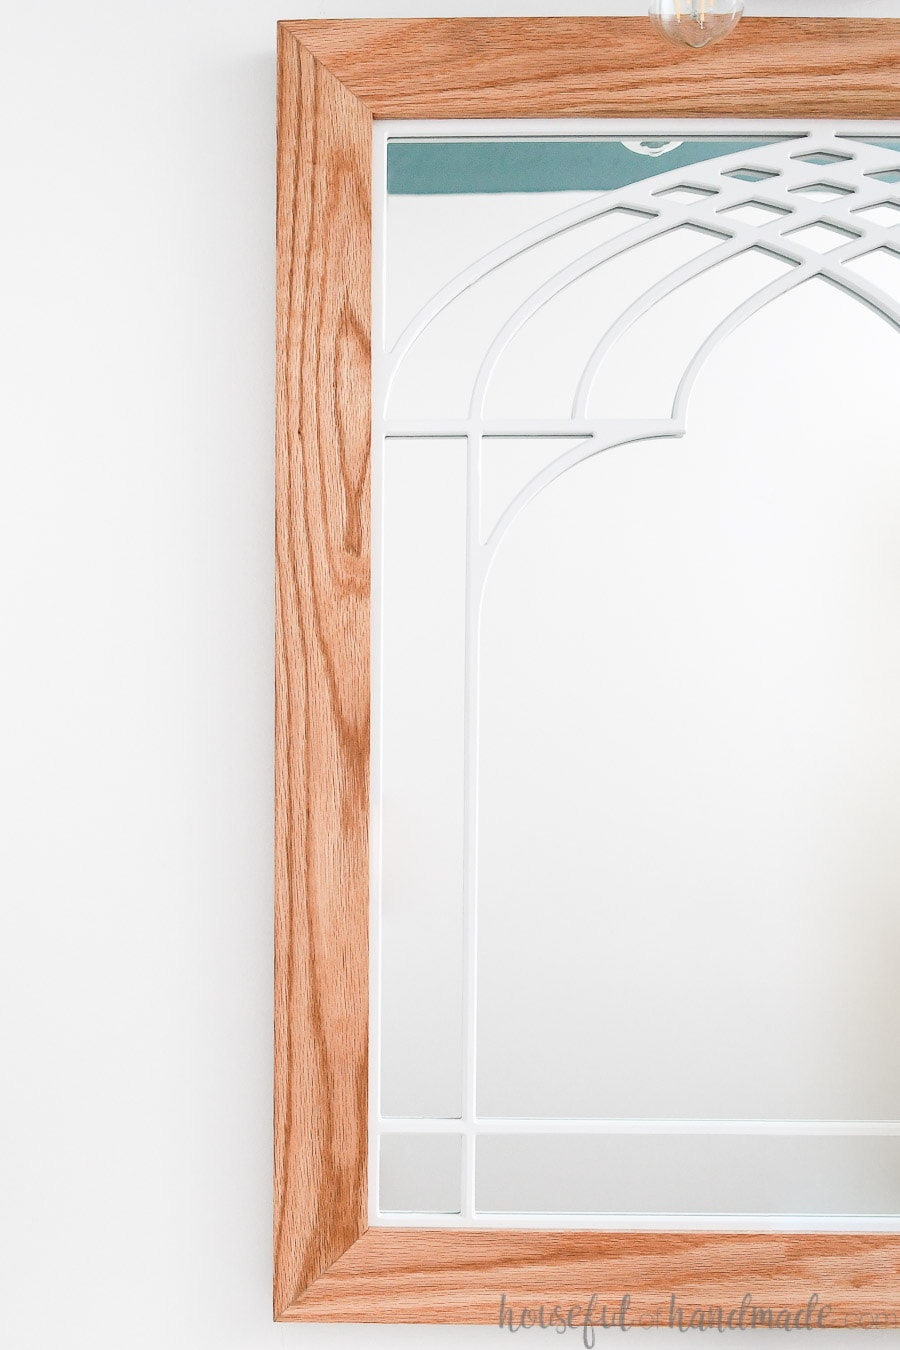 Close up of the window frame mirror with oak frame and white window pane design.